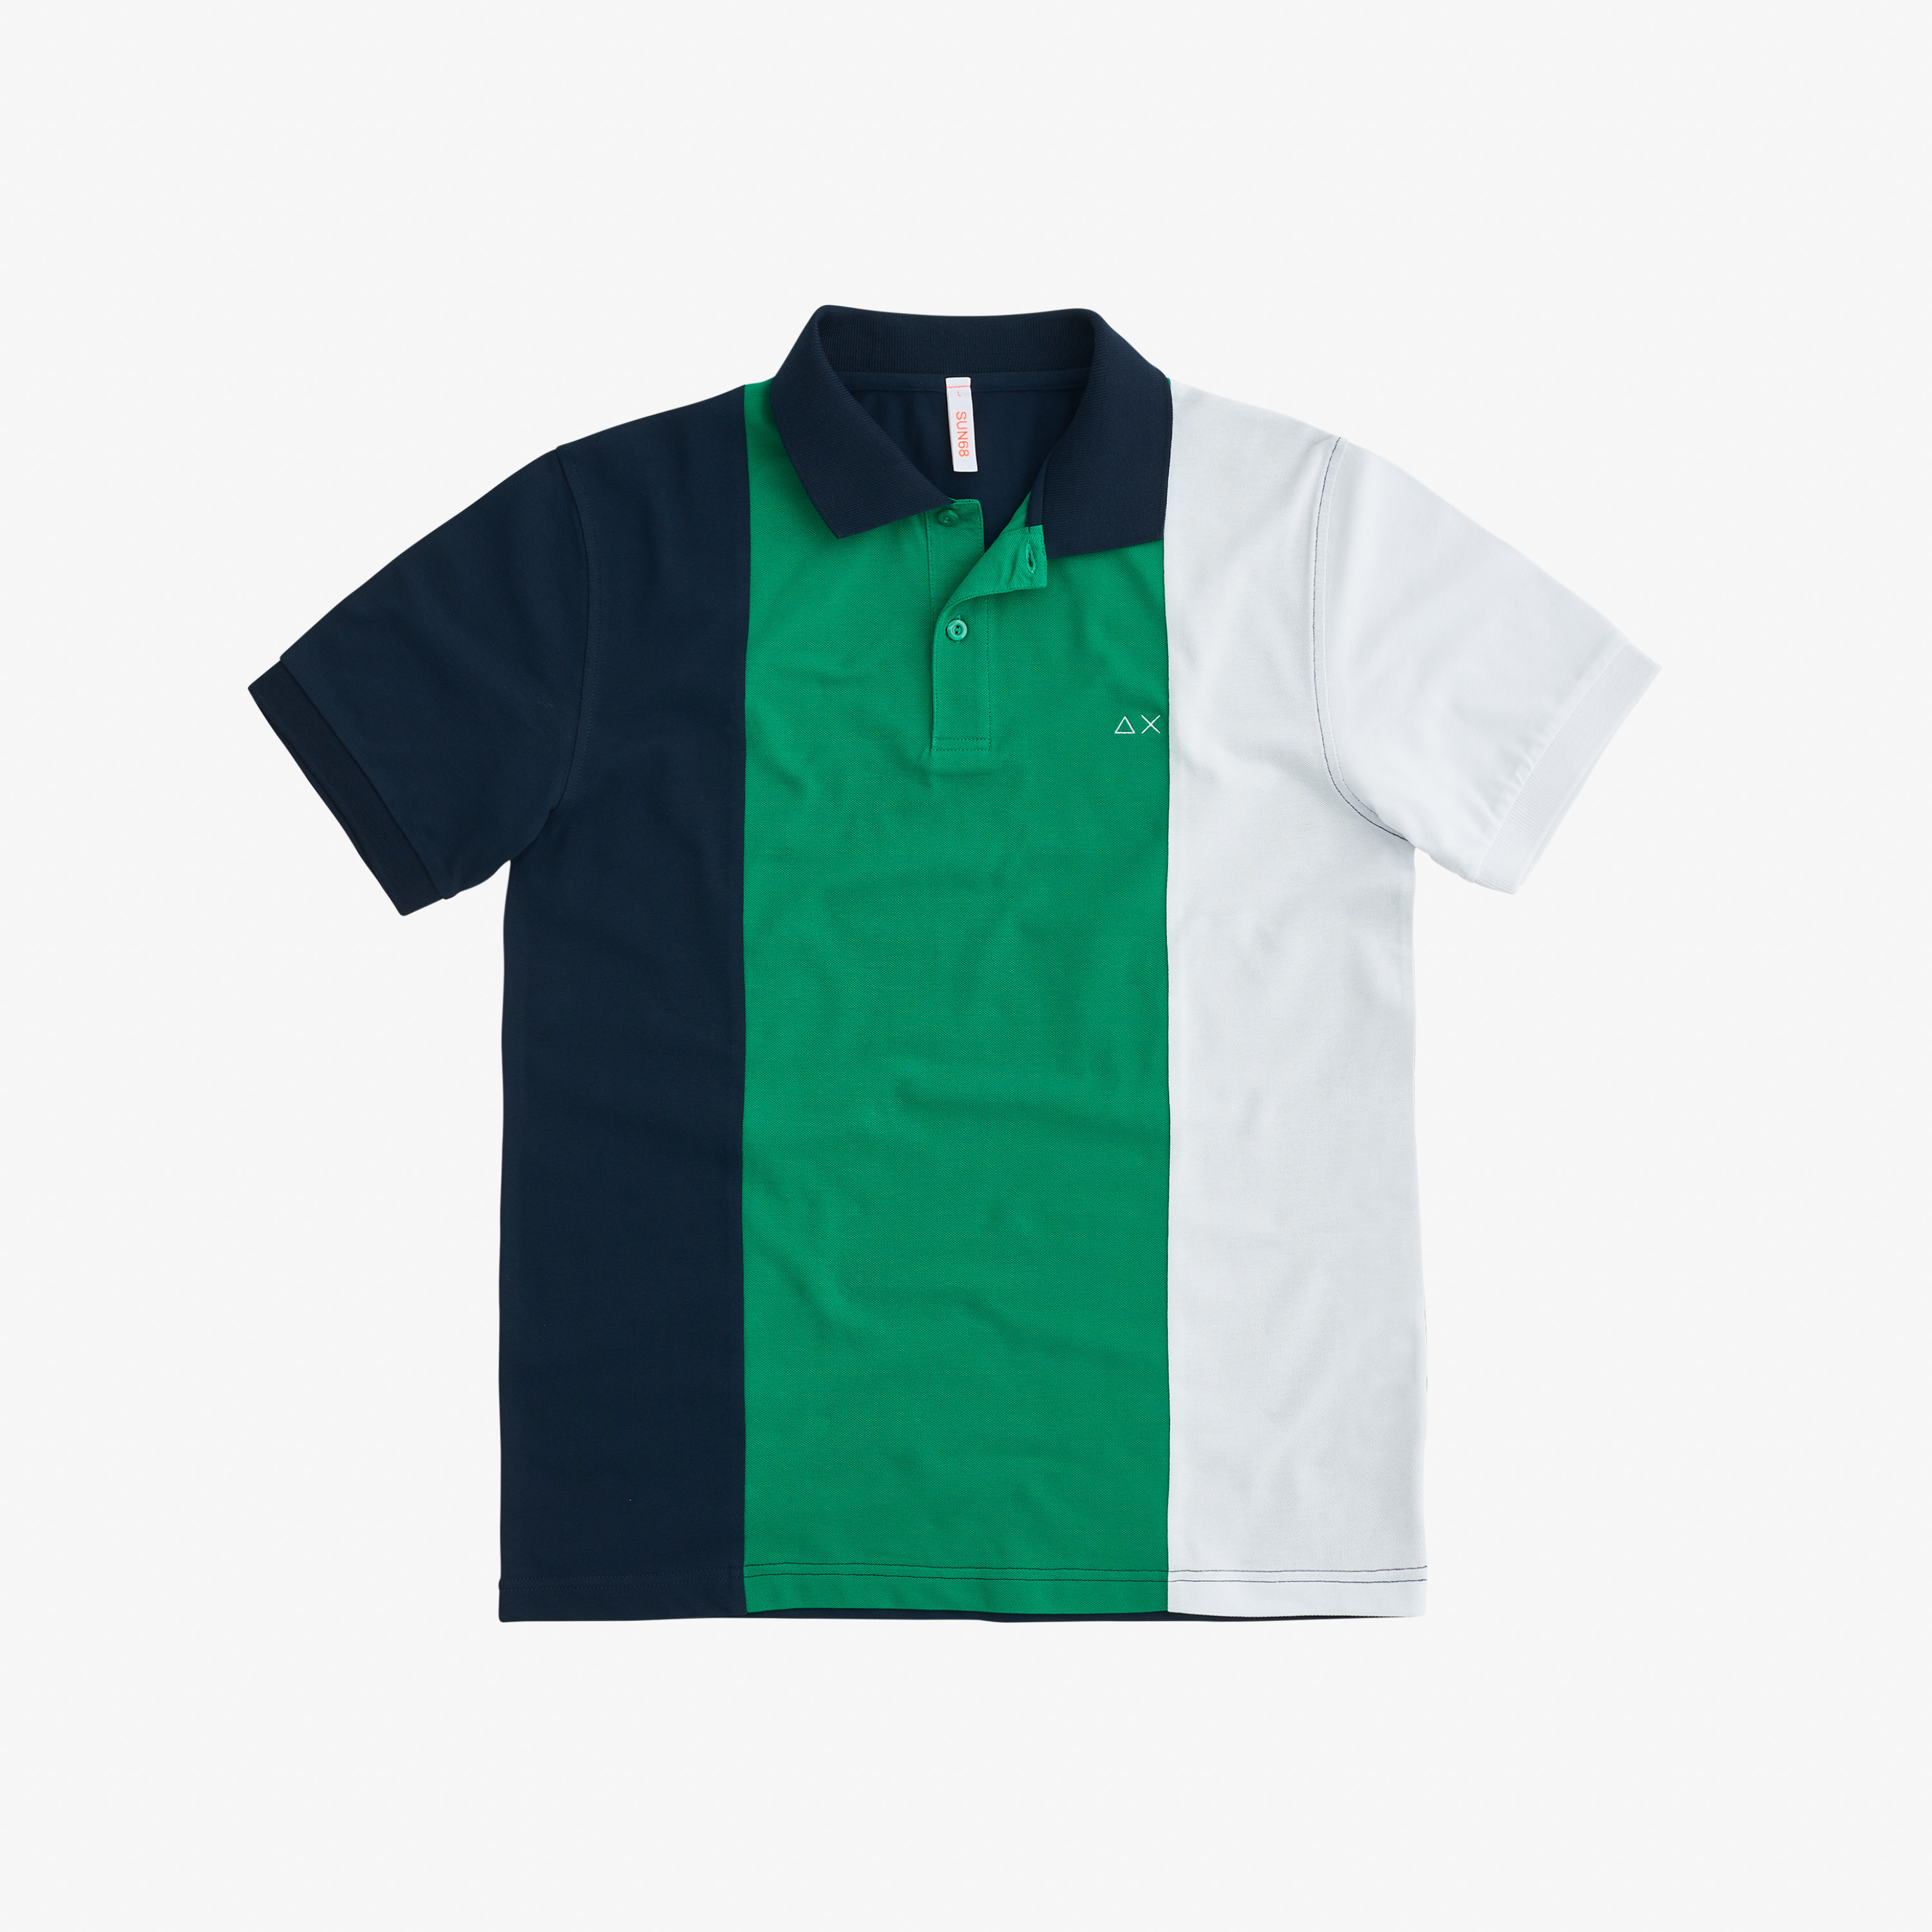 POLO FULL STRIPES EL. NAVY BLUE/VERDE PRATO